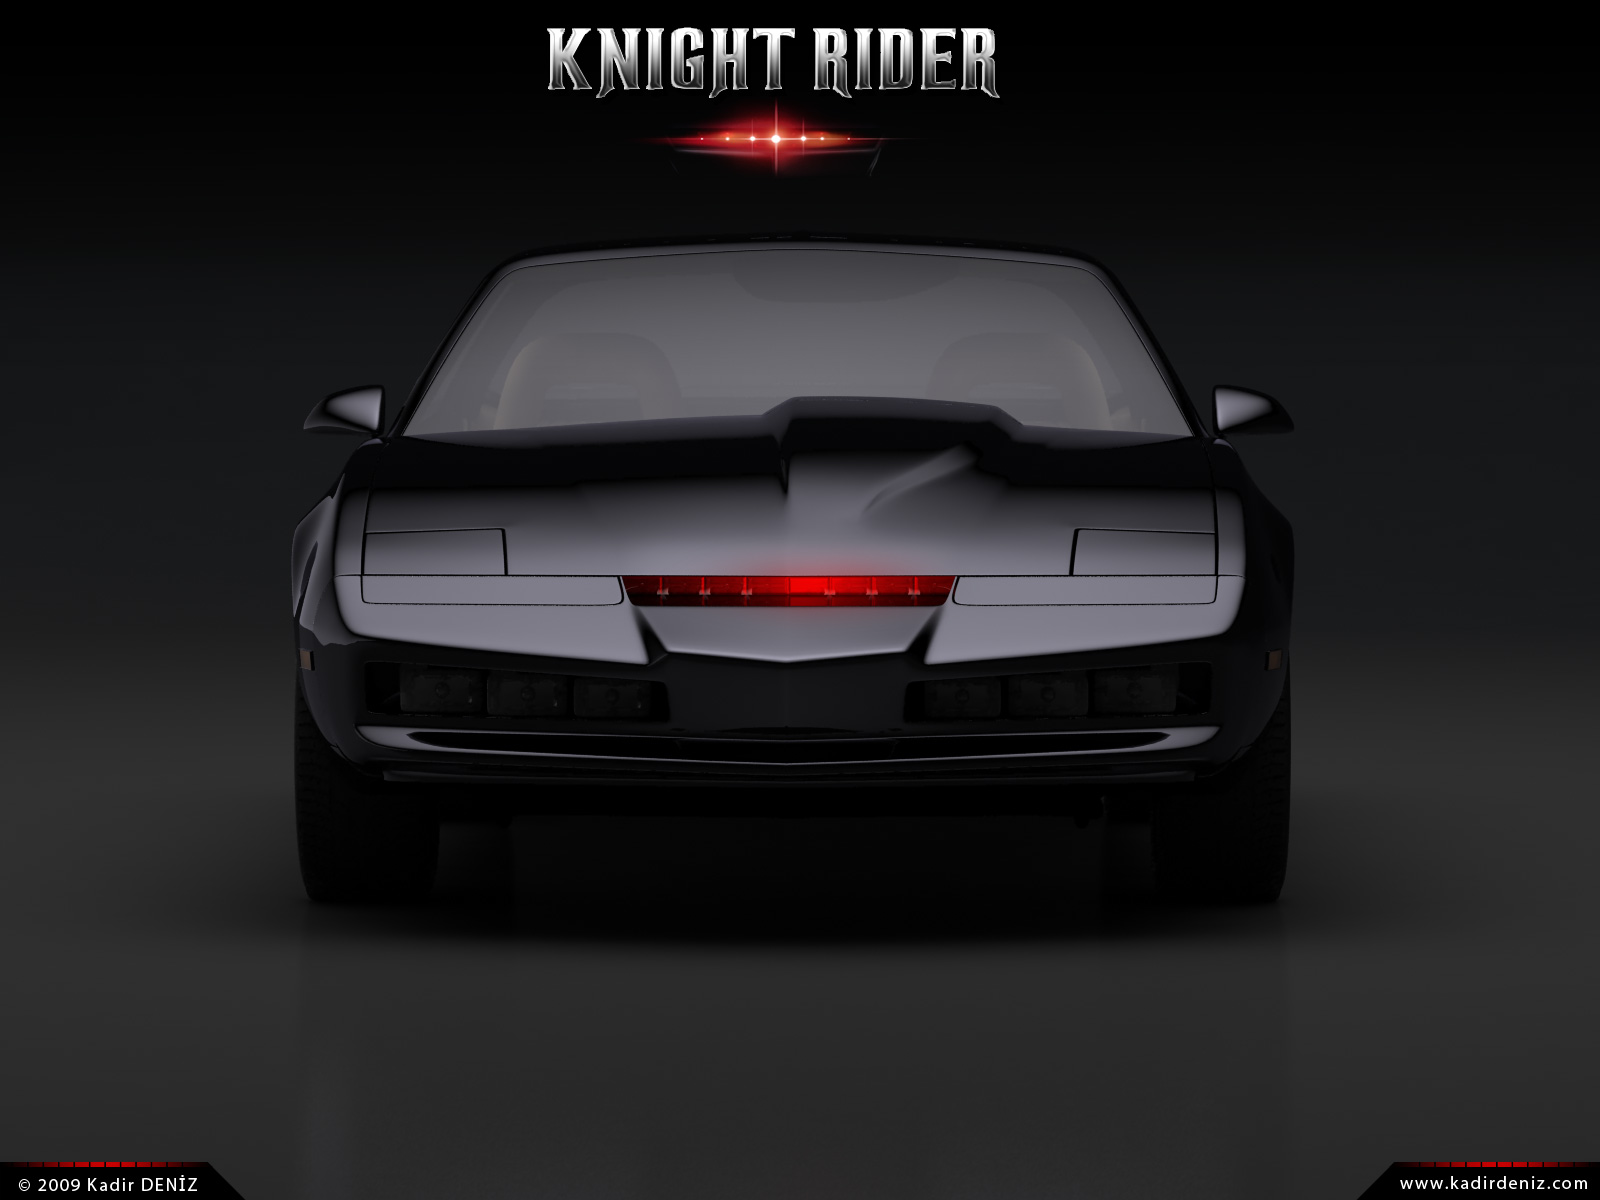 Knight rider 3d art pornos picture